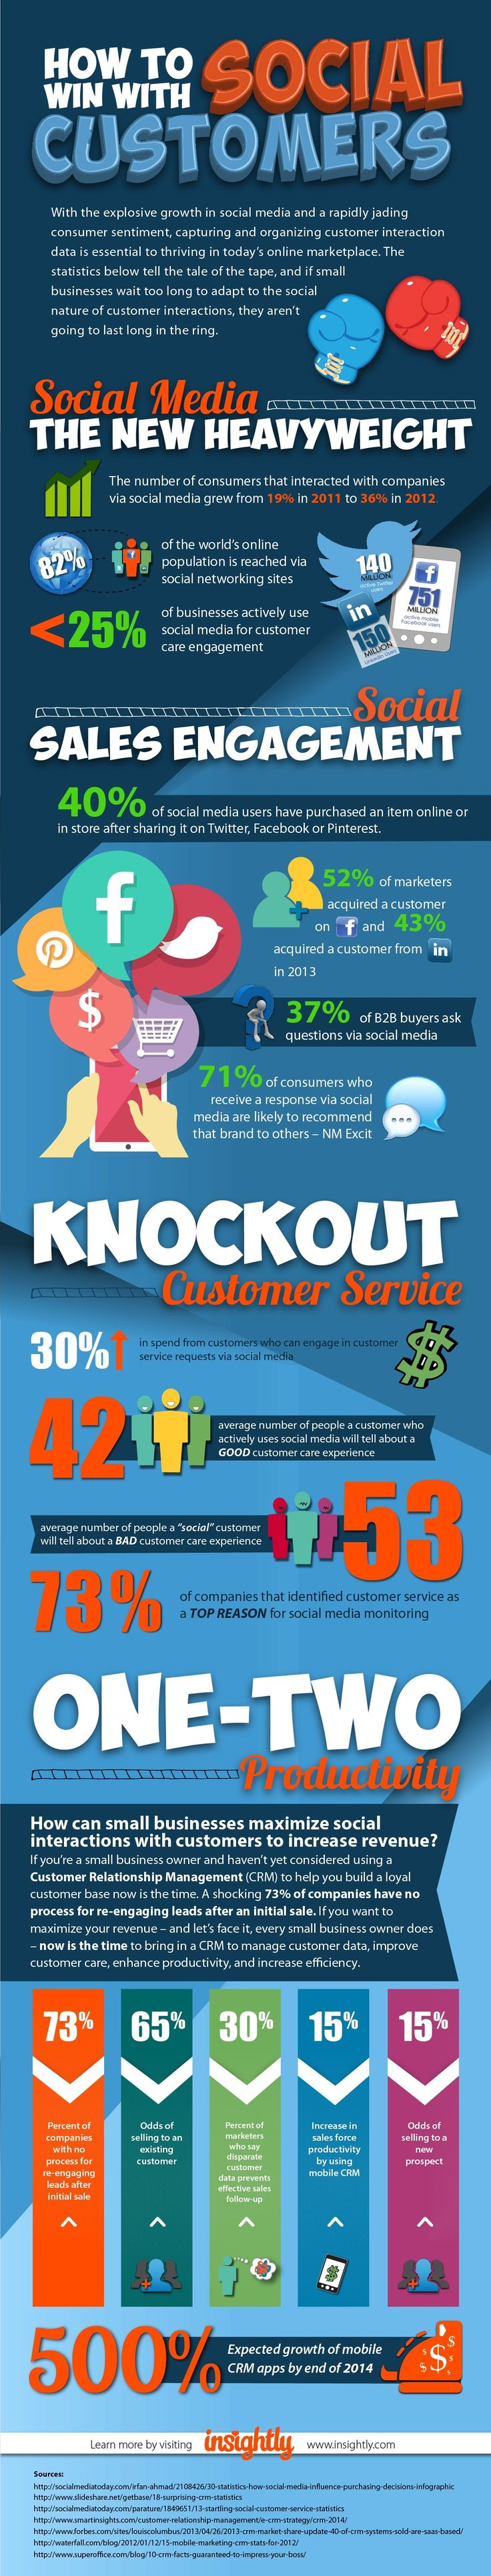 How SMBs Can Use Social to Win Customers (and Keep Them) [Infographic]  image Insightly Infographic SocialCRM